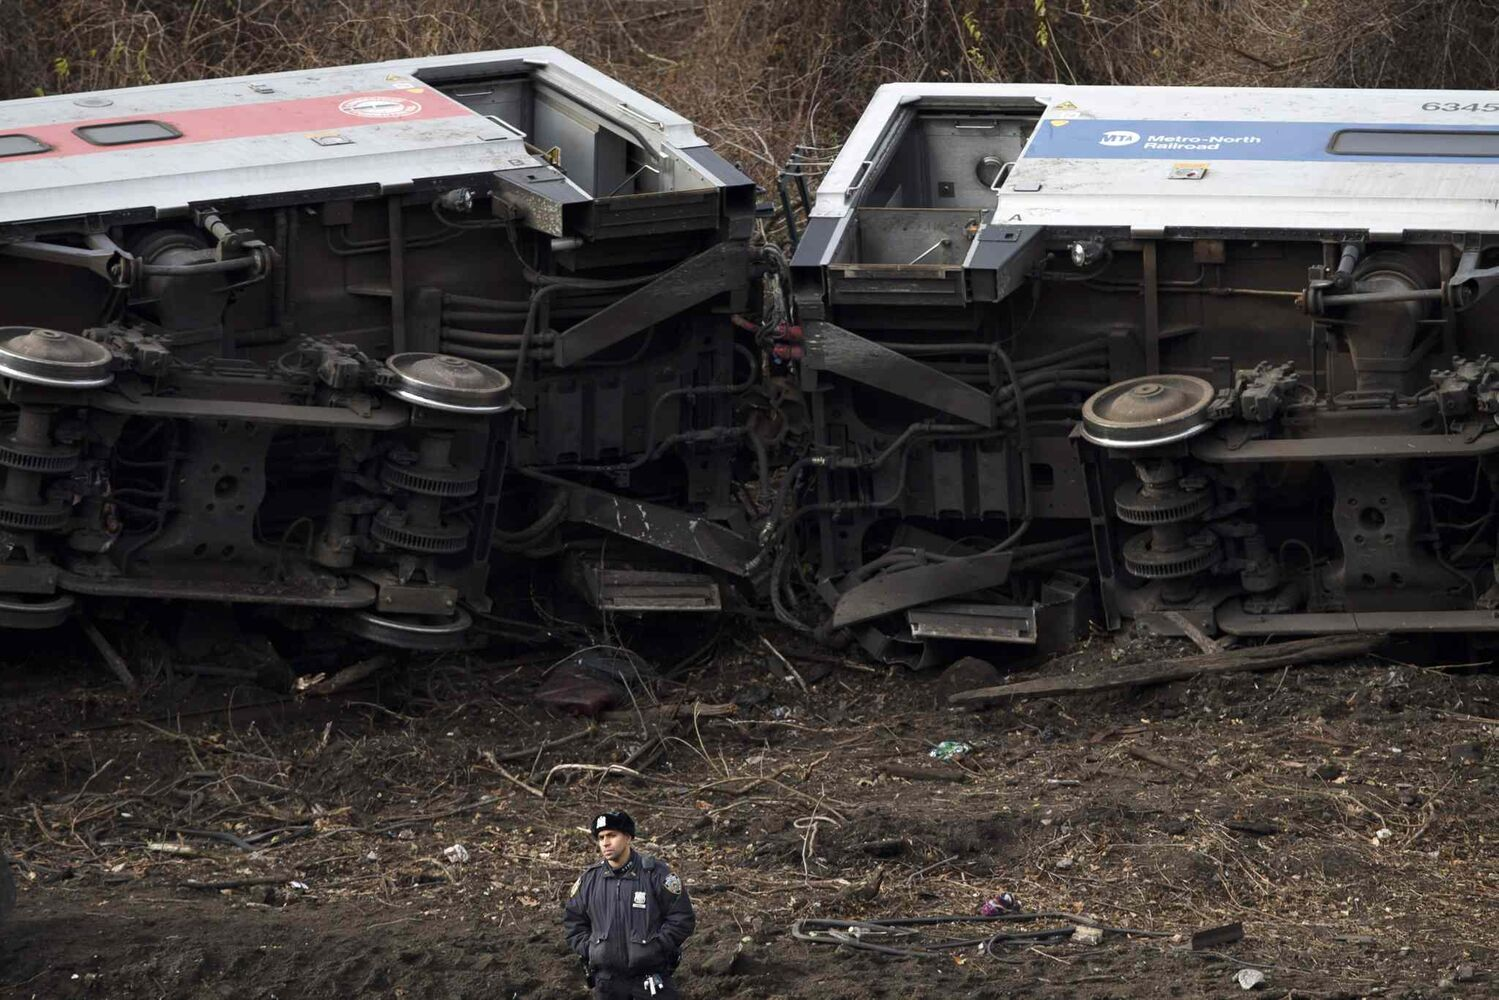 A police officer stands guard at the scene of a Metro-North passenger train derailment in the Bronx borough of New York Sunday.